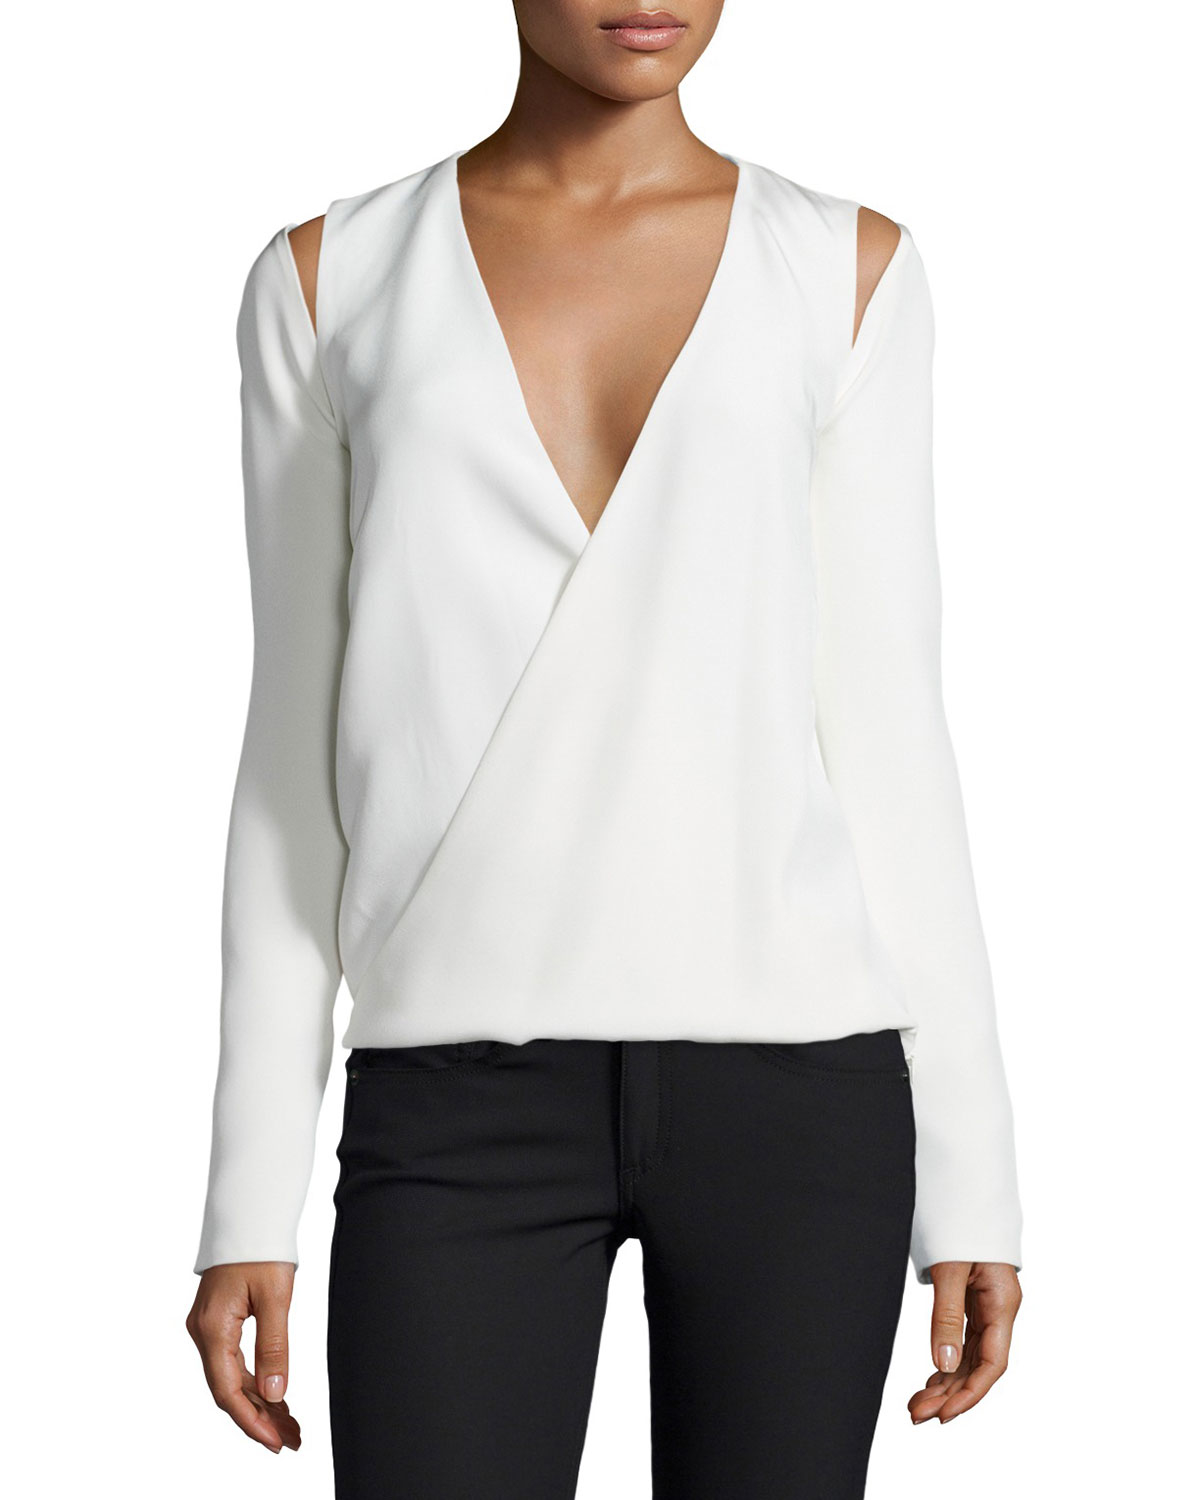 Kaufman franco Long-Sleeve Wrap Blouse in White | Lyst